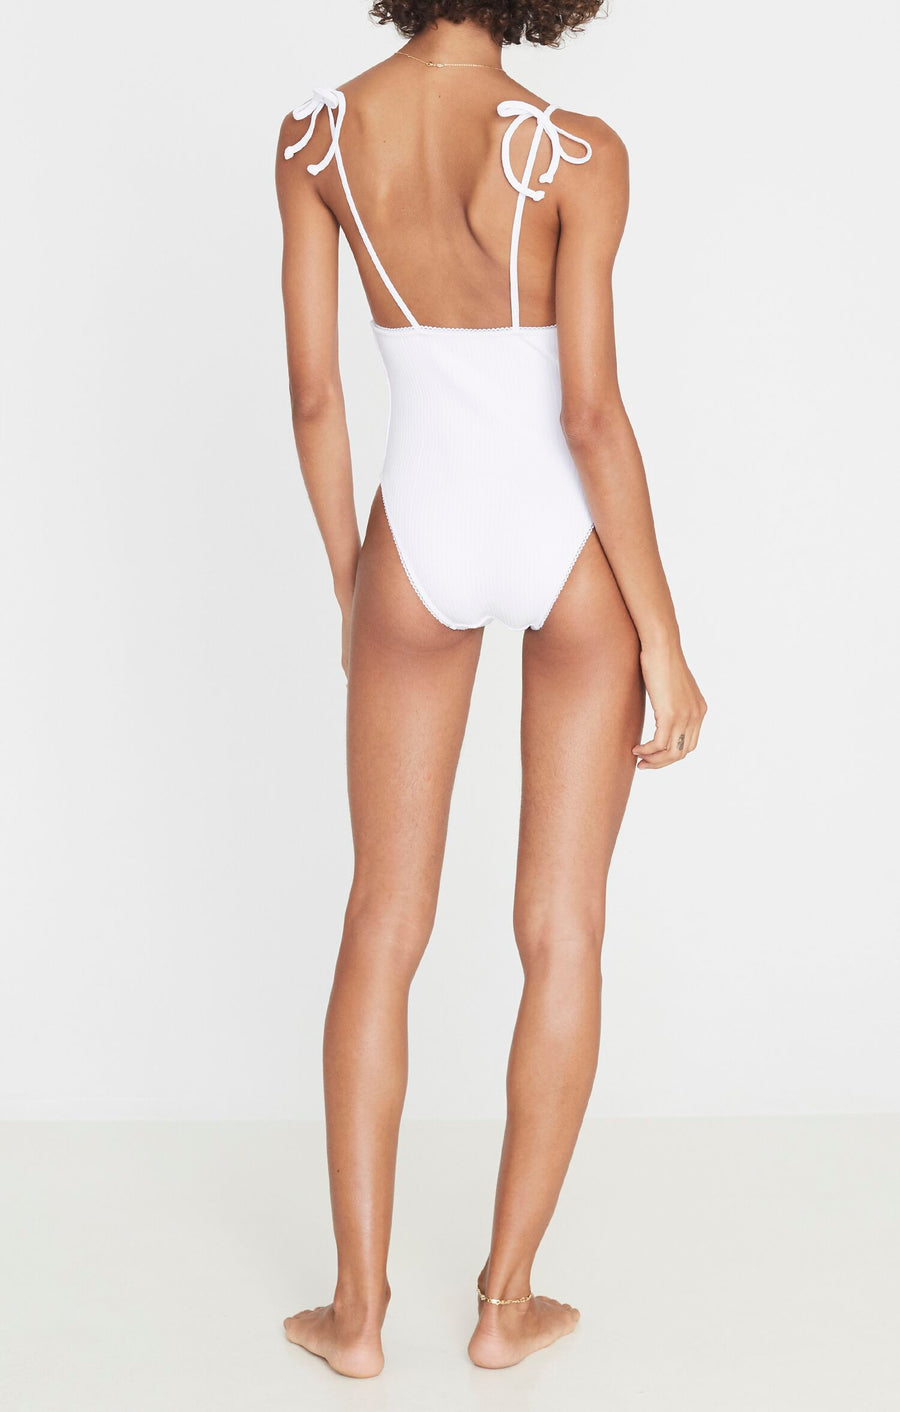 Faithfull Violette One Piece Plain White Rib